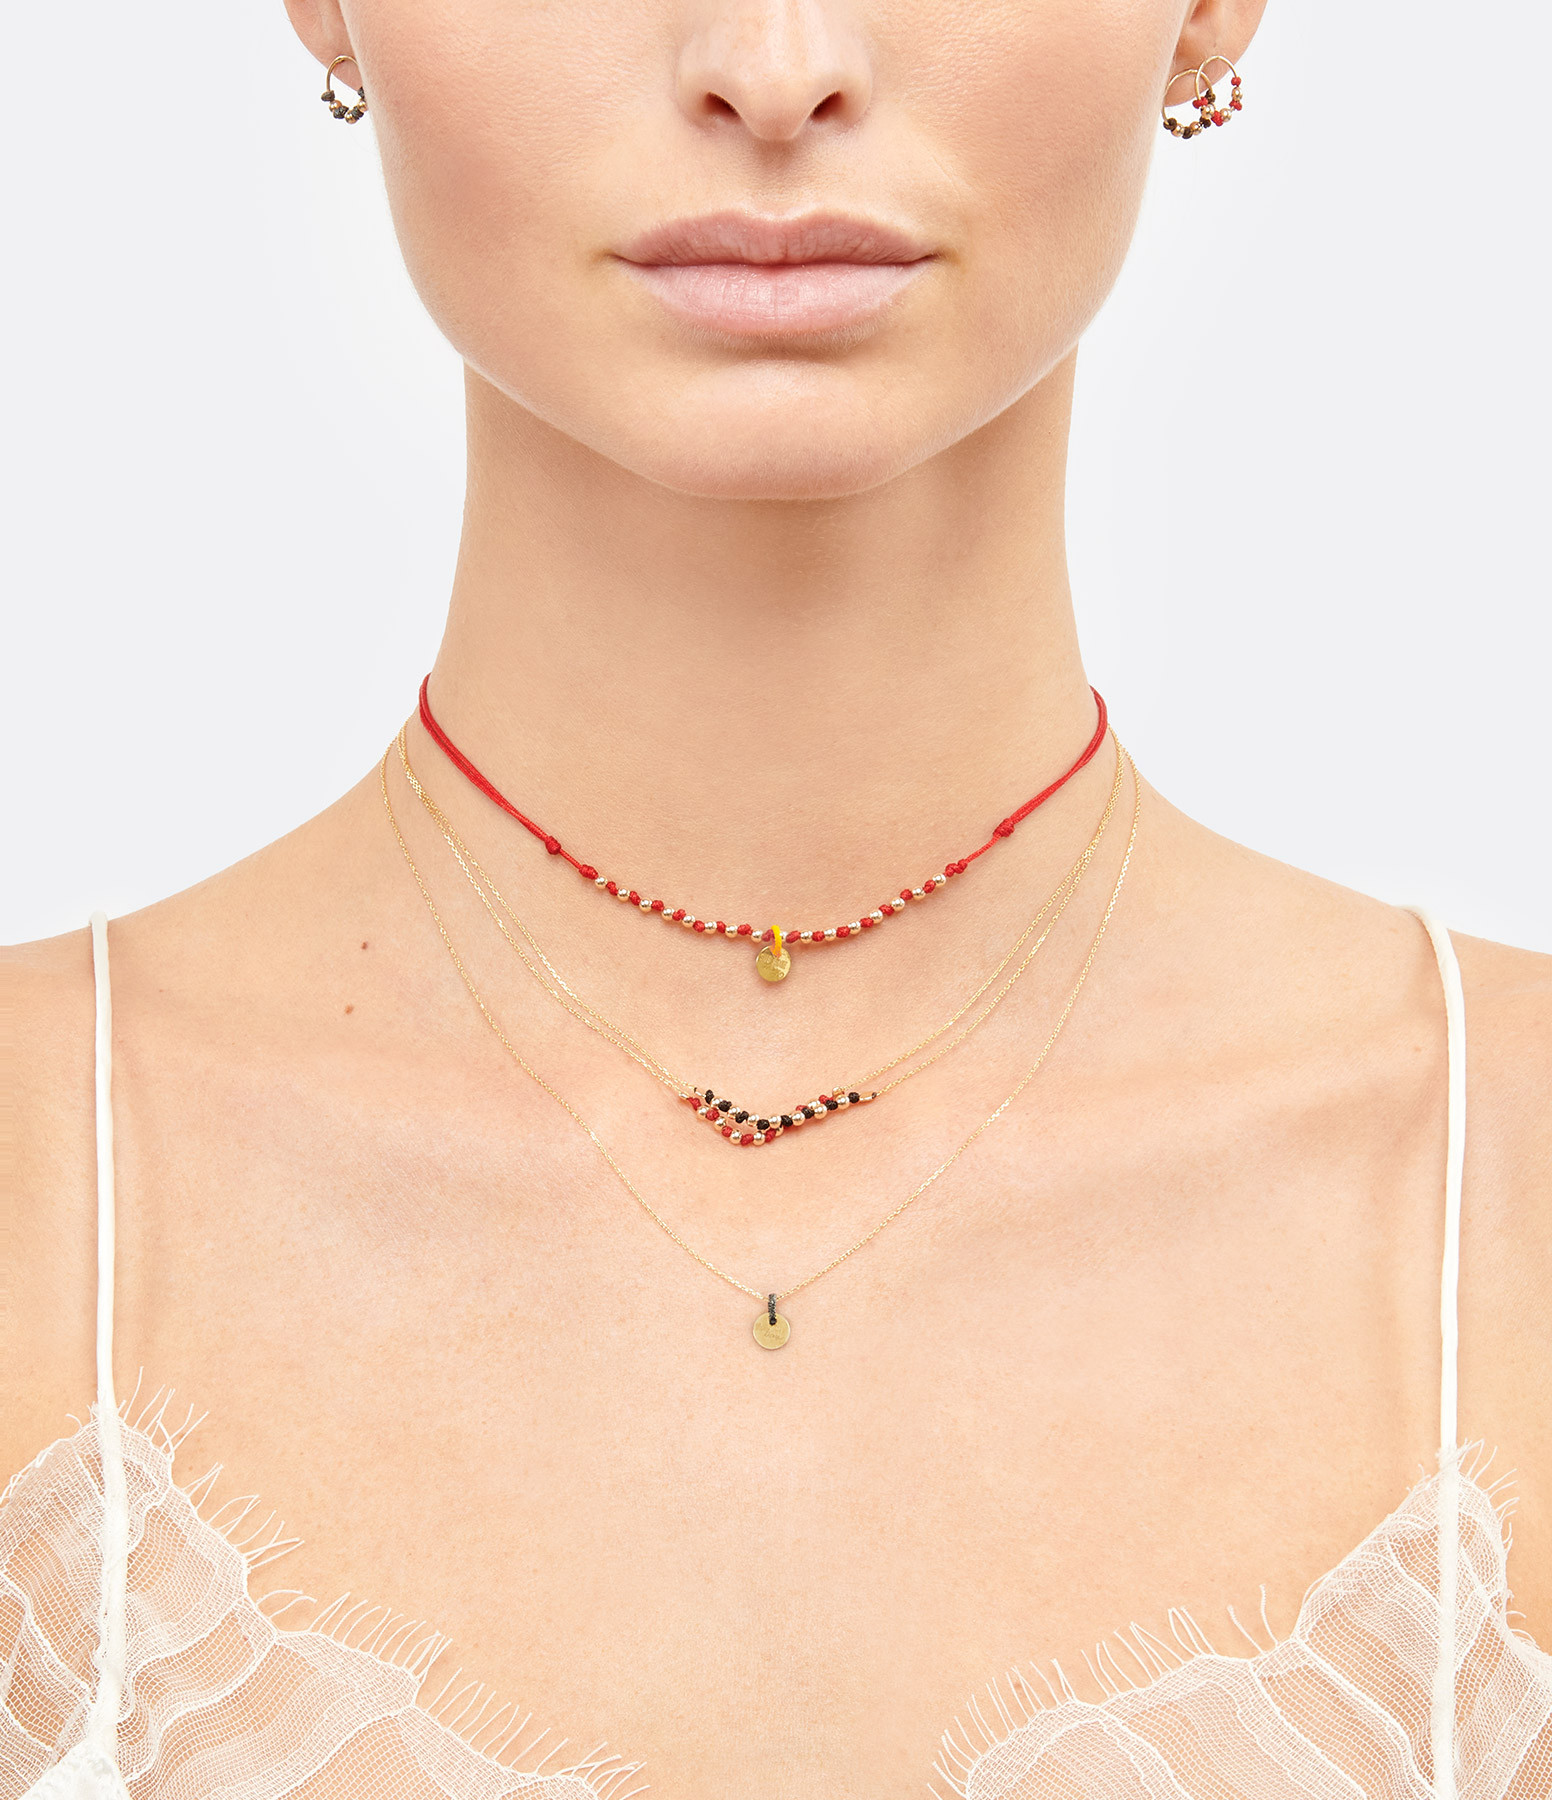 LSONGE - Collier Sublime 7 Perles Rubis Or